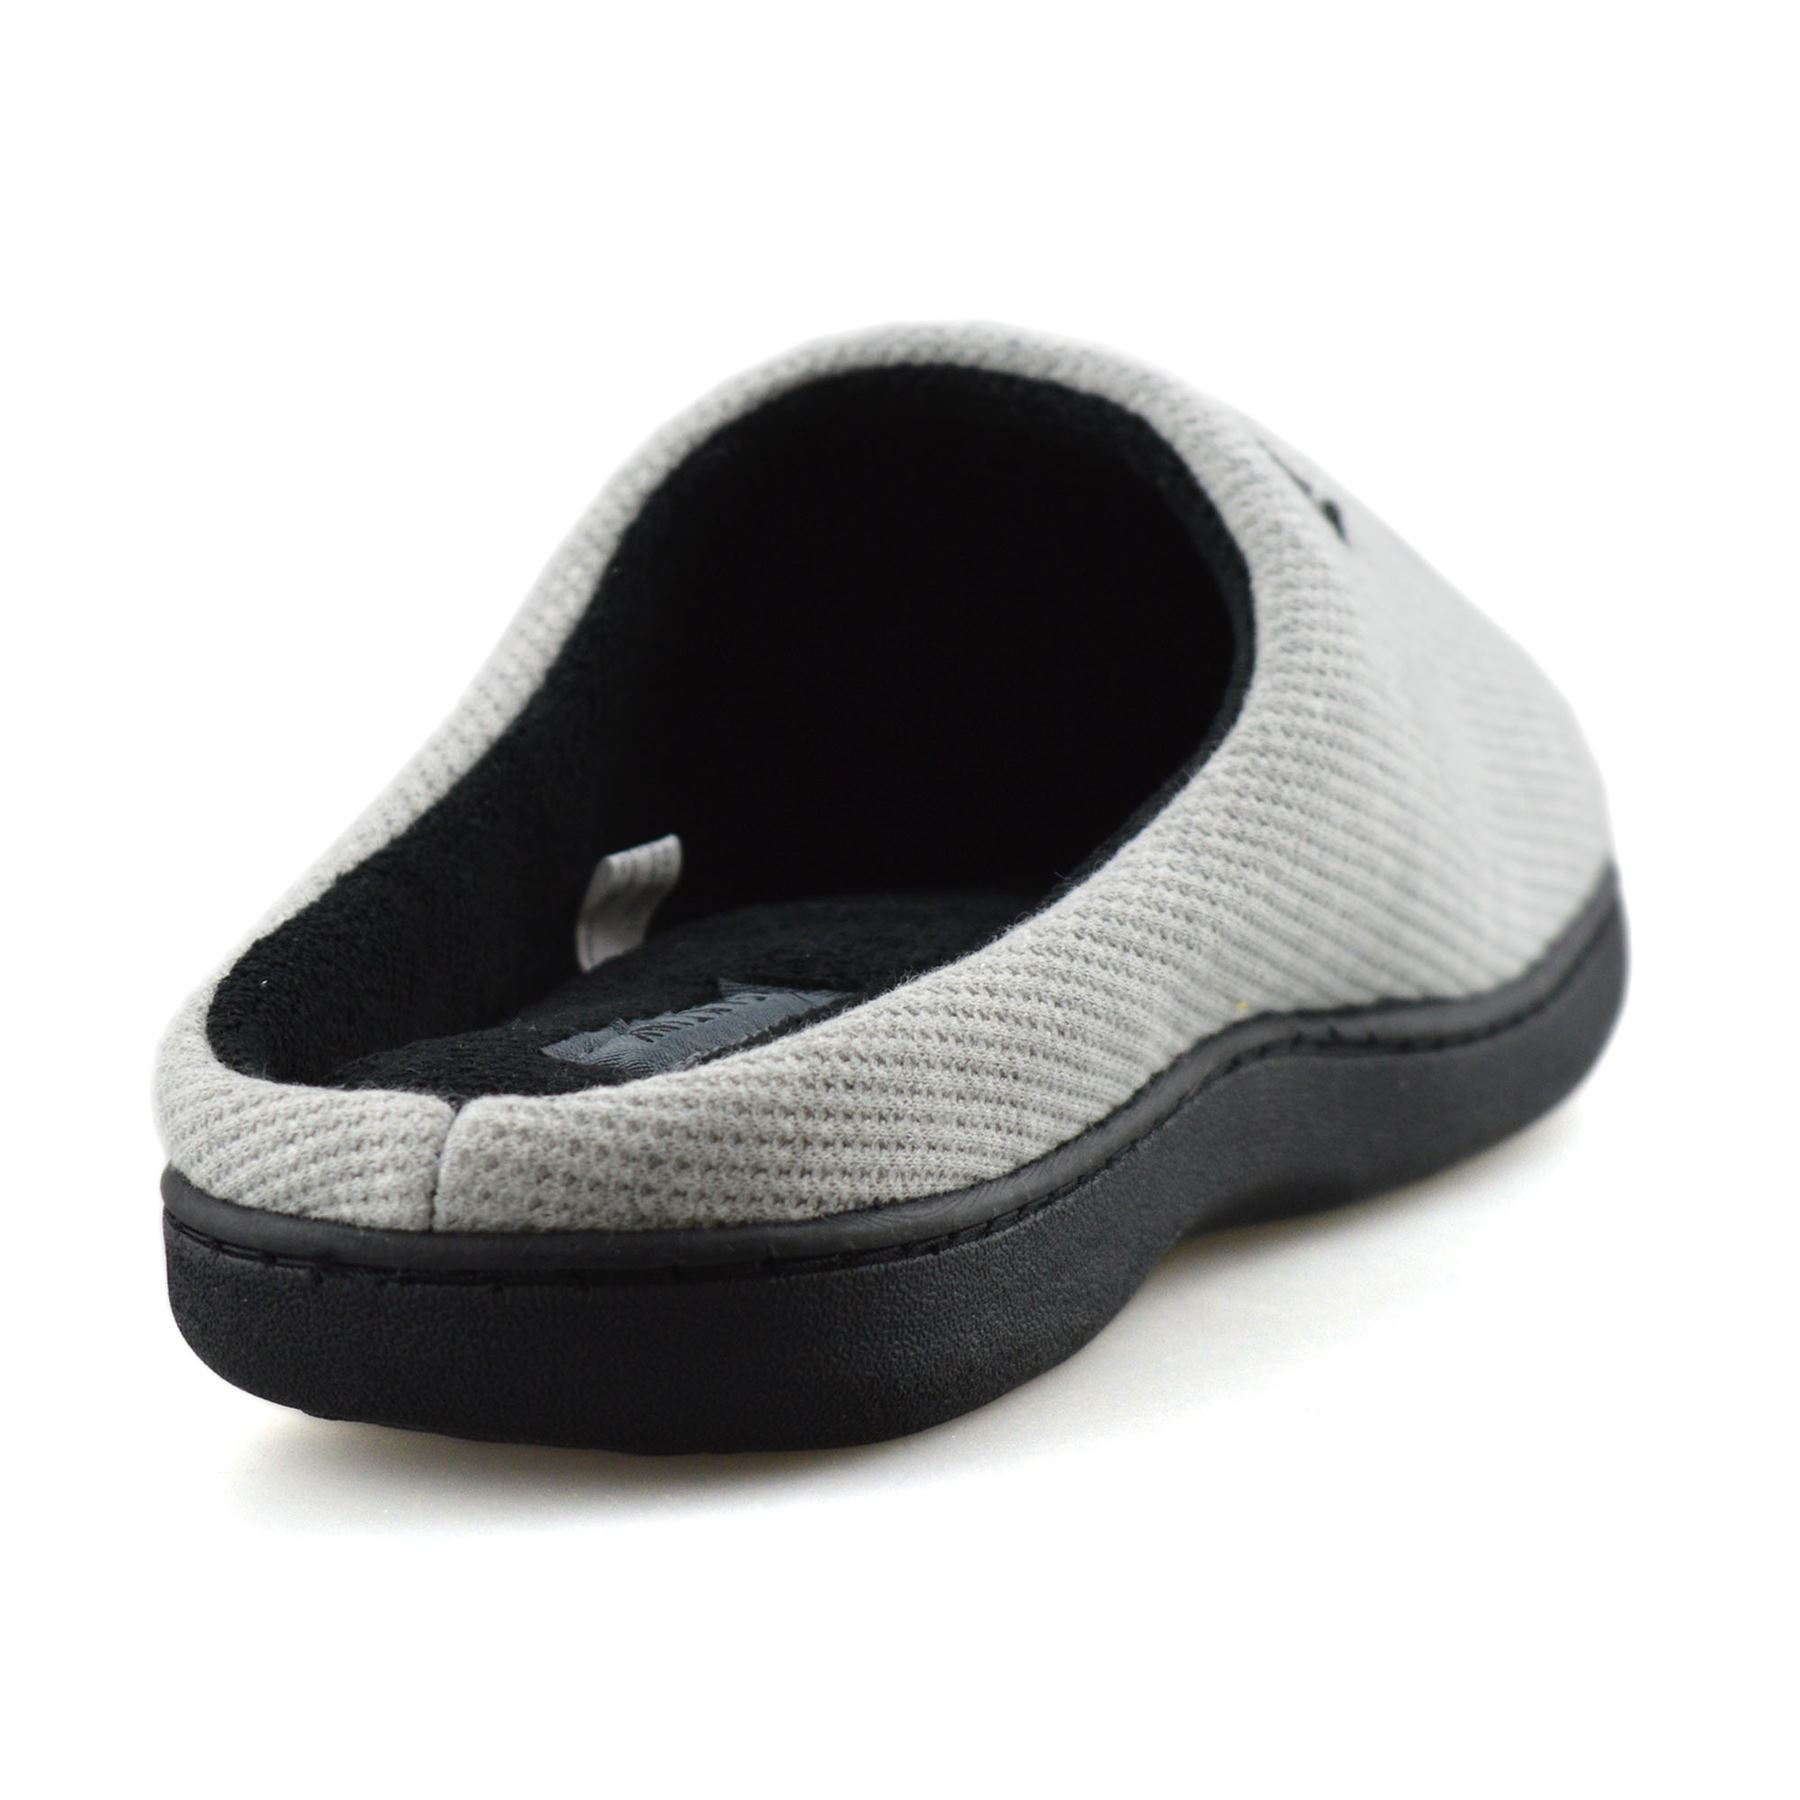 Mens-Memory-Foam-Warm-Fleece-Lined-Cotton-Slippers-Slip-On-Clog-Mules-Shoes-Size thumbnail 30